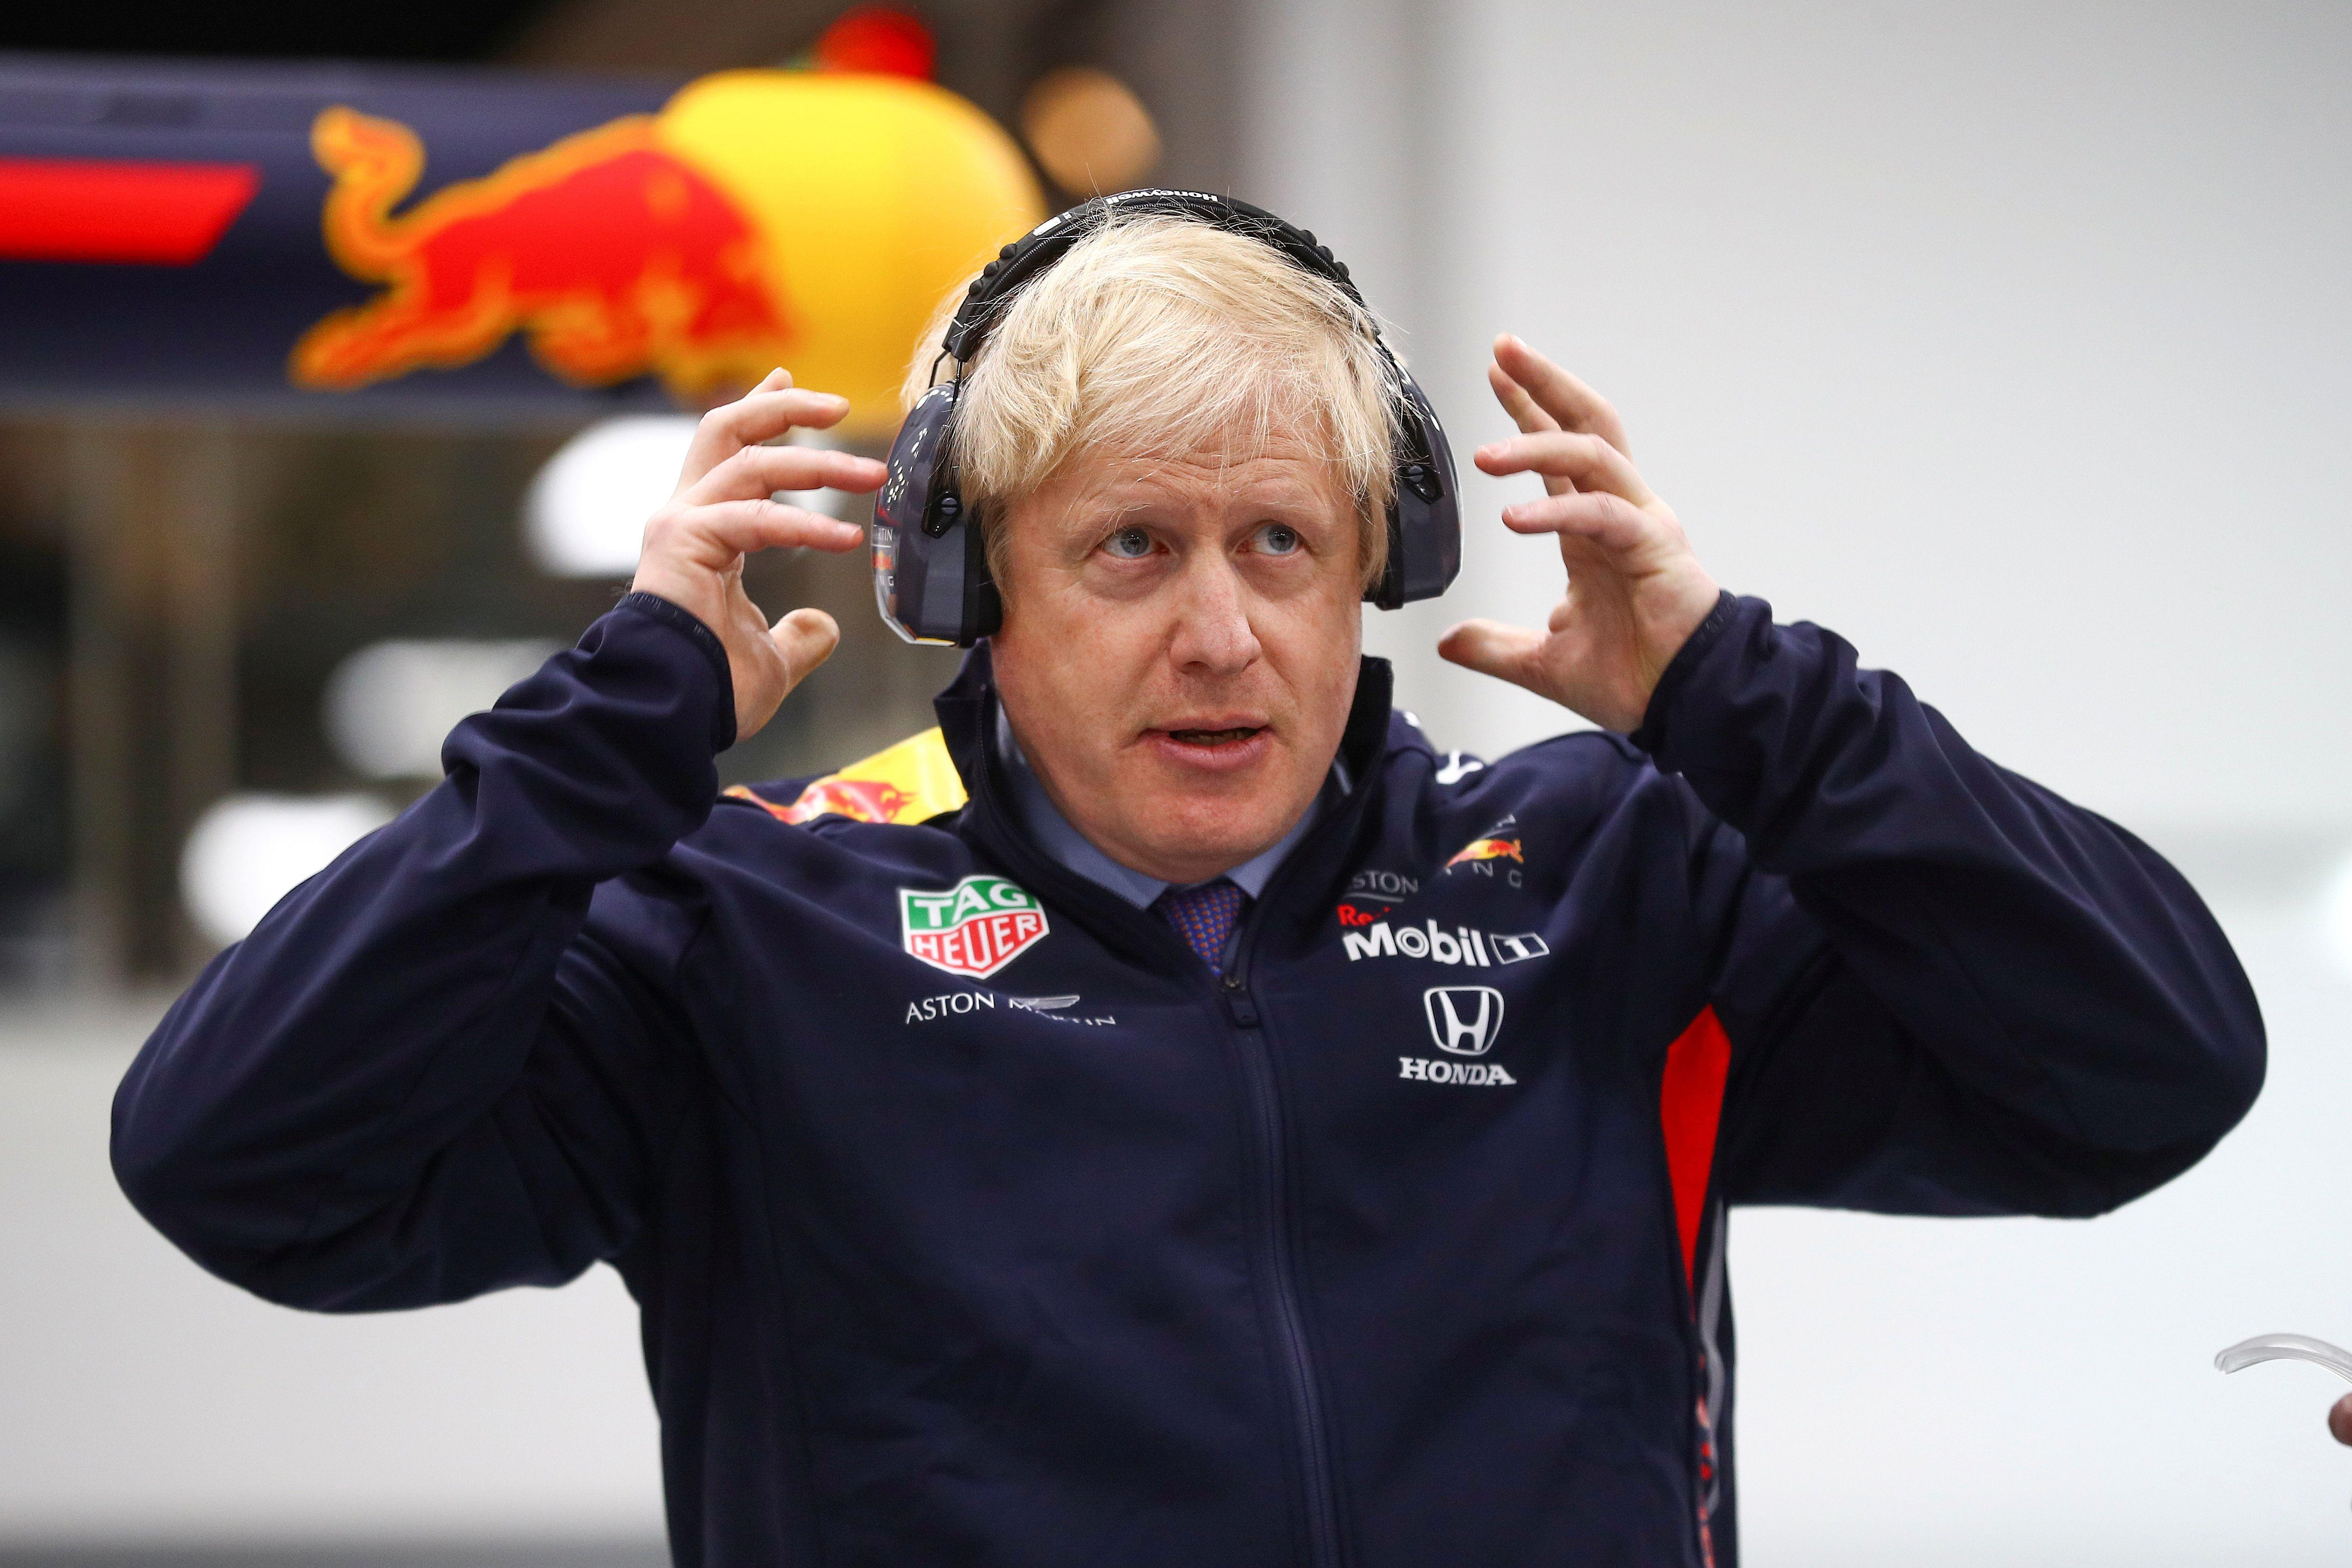 Britain's Prime Minister Boris Johnson dons protective safety wear as he prepares to change a wheel of a Formula One (F1) race car during a Conservative Party general election campaign visit to Red Bull Racing in Milton Keynes, north of London on December 4, 2019. - Britain will go to the polls on December 12, 2019 to vote in a pre-Christmas general election. (Photo by HANNAH MCKAY / POOL / AFP) (Photo by HANNAH MCKAY/POOL/AFP via Getty Images)